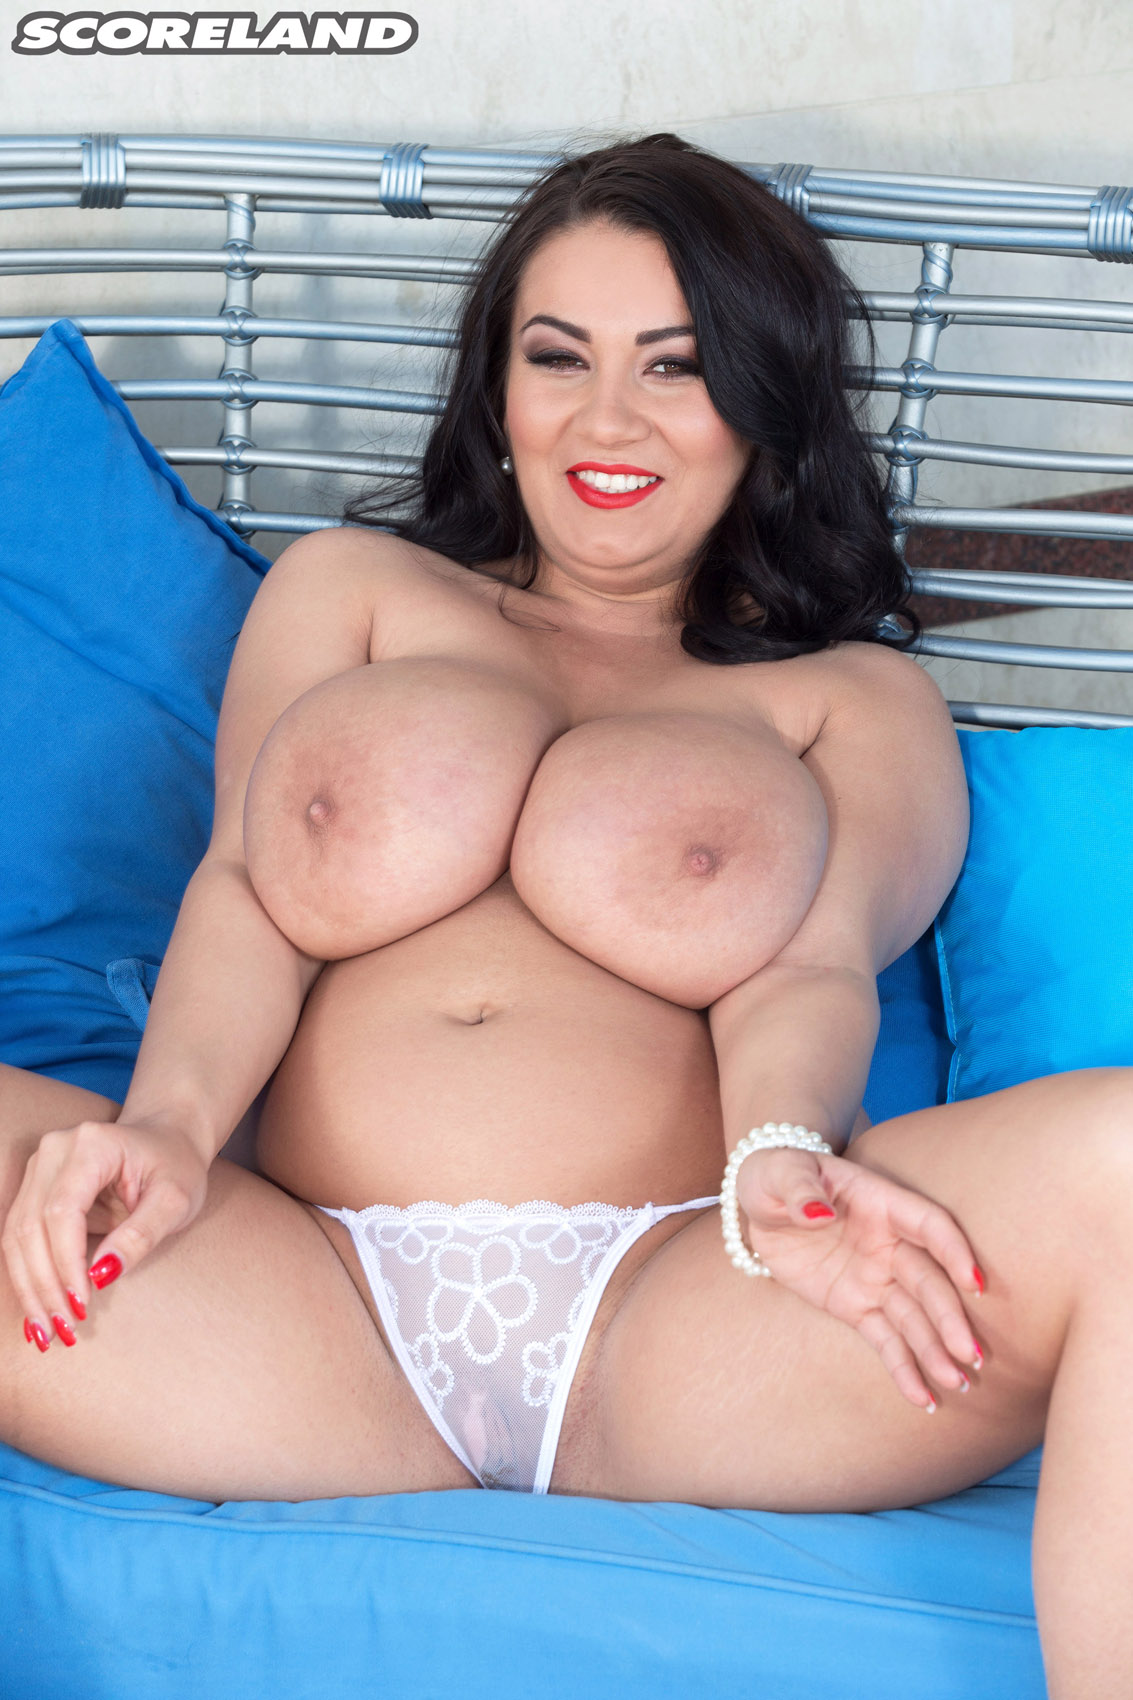 Helen Star Busty Babe Slapping Her Huge Boobs And Ass Tnaflix Porn Pics